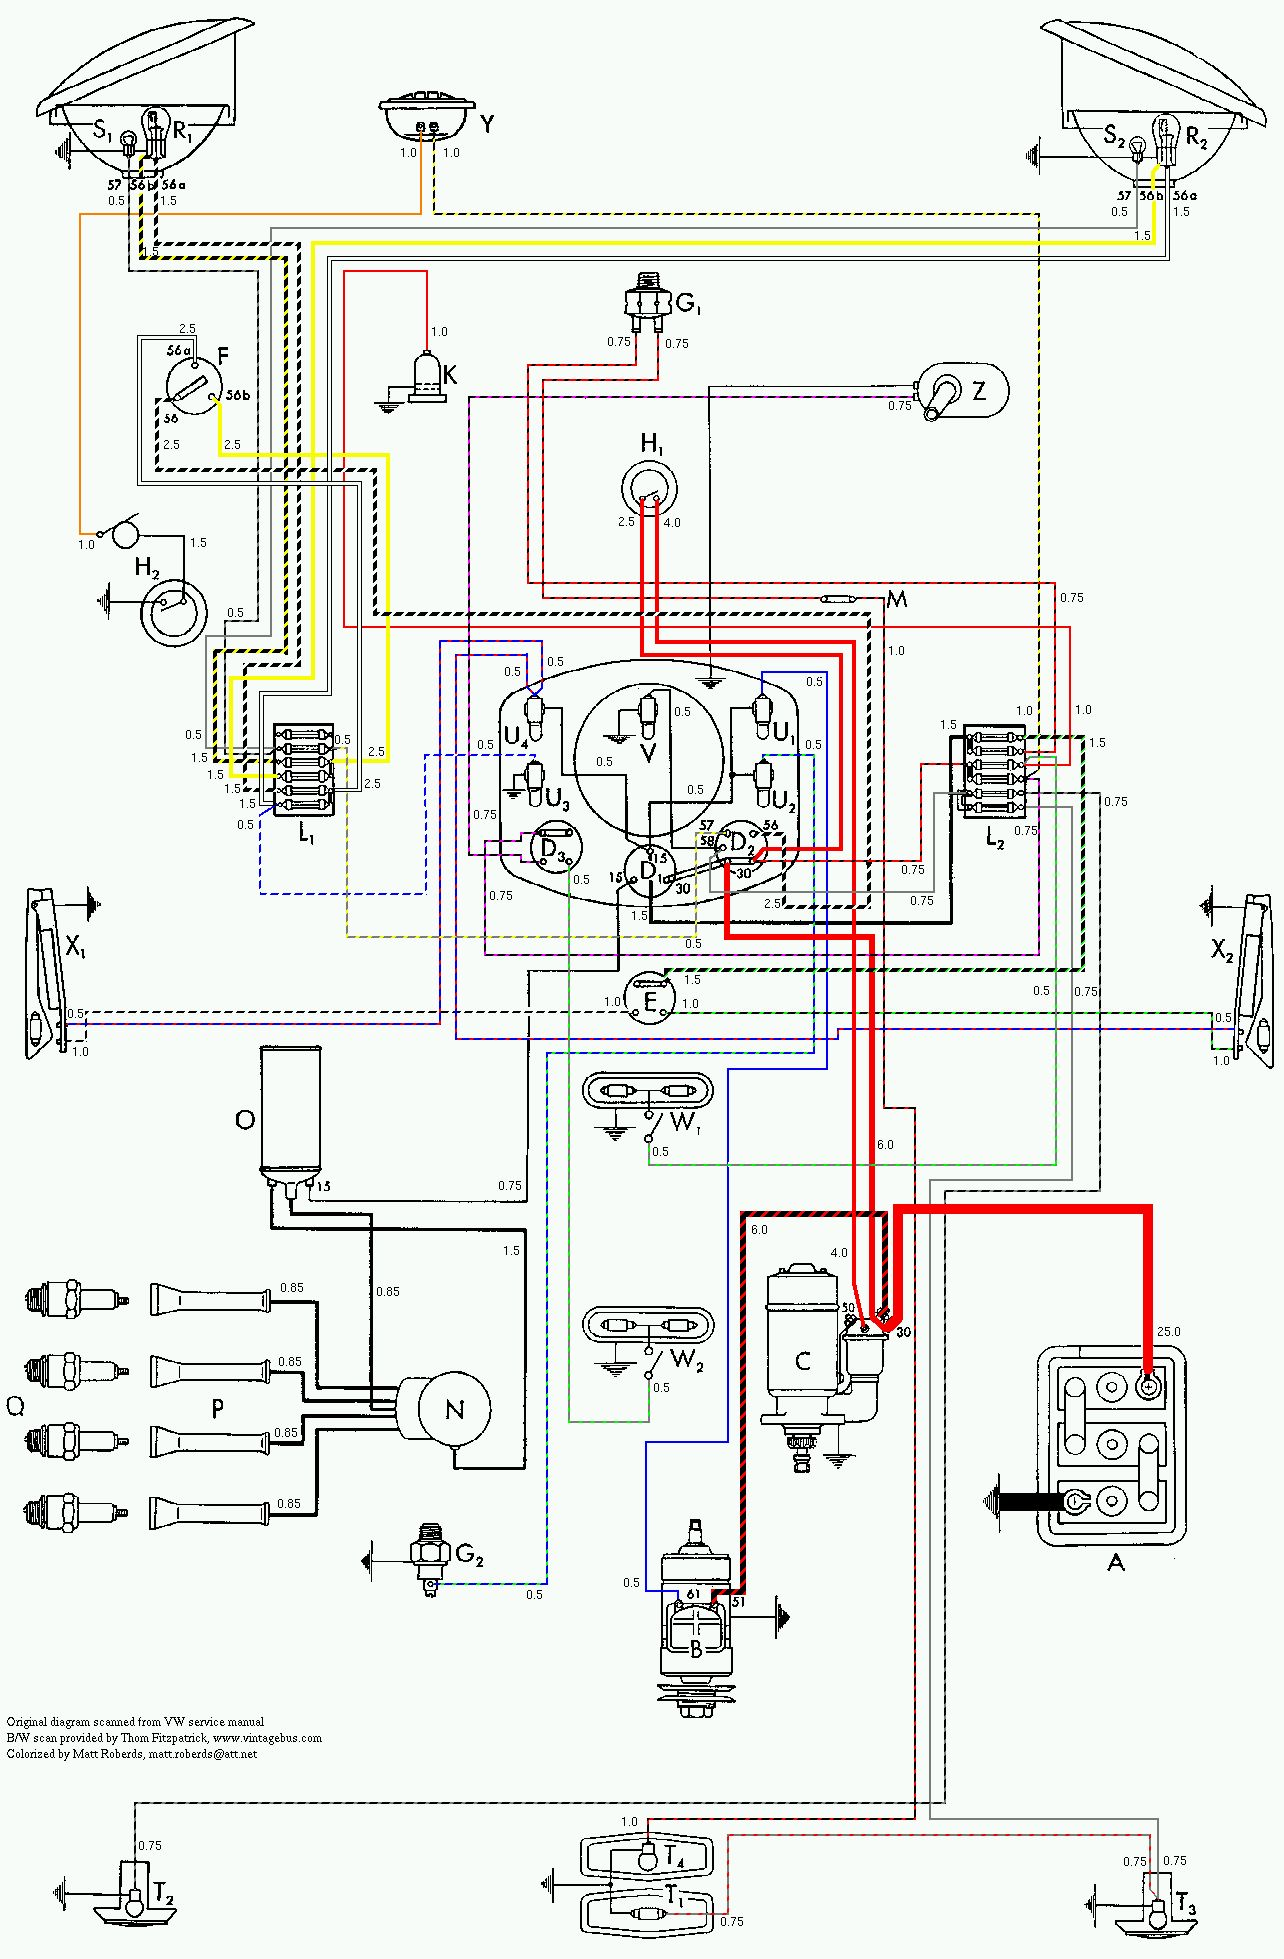 vintagebus com vw bus and other wiring diagrams rh vintagebus com Doorbell Wiring Omega Alarm Wiring Diagrams